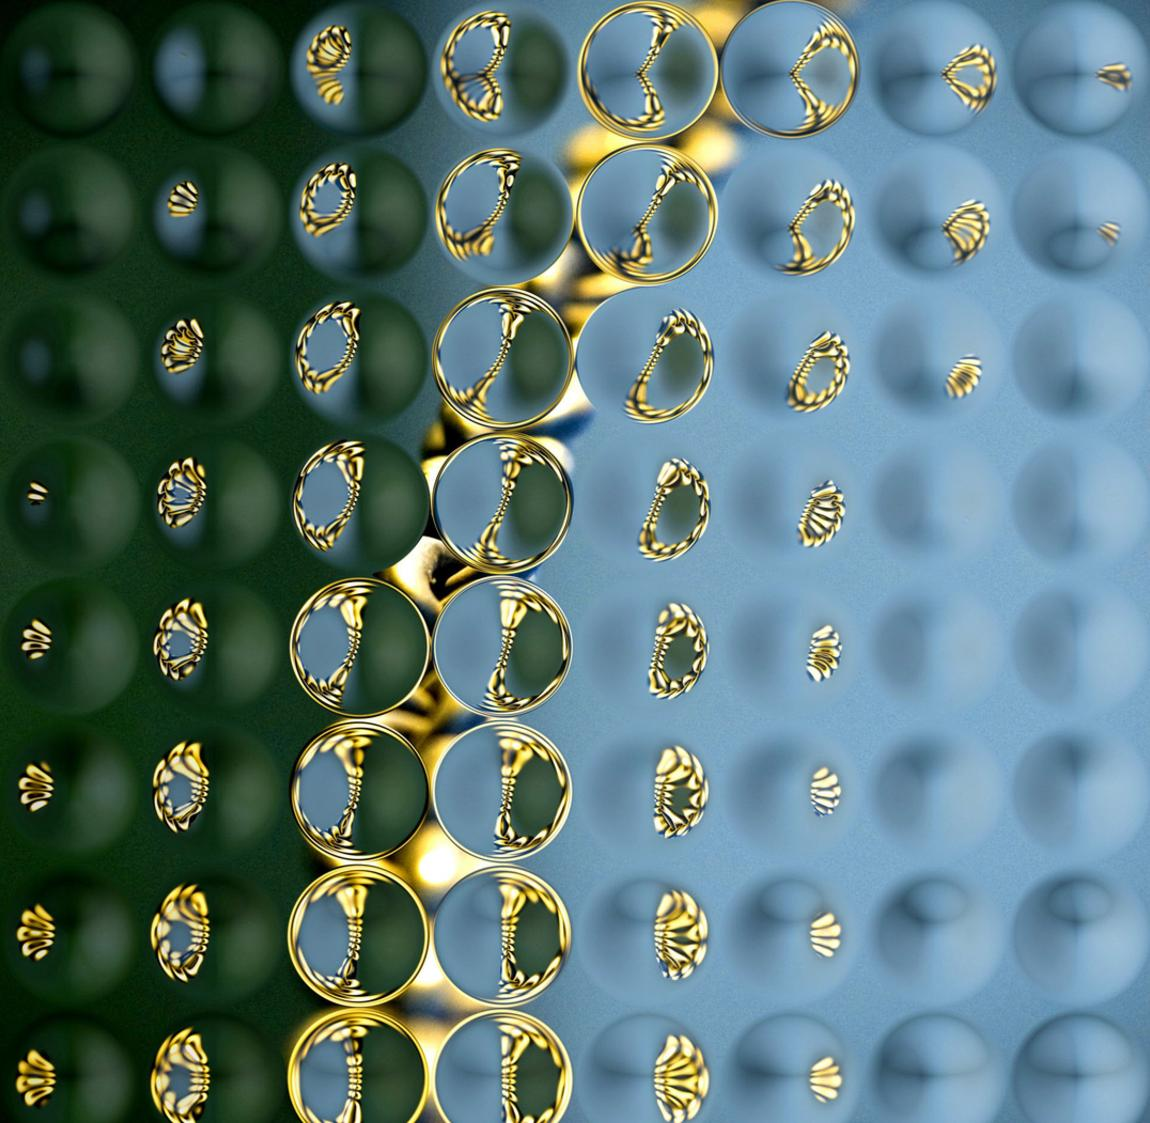 op-art photo, green and blue seen through glass with convex bubble-like circles in nine rows of eight, with some distorted yellow reflections especially in left-hand circles, with olive green border